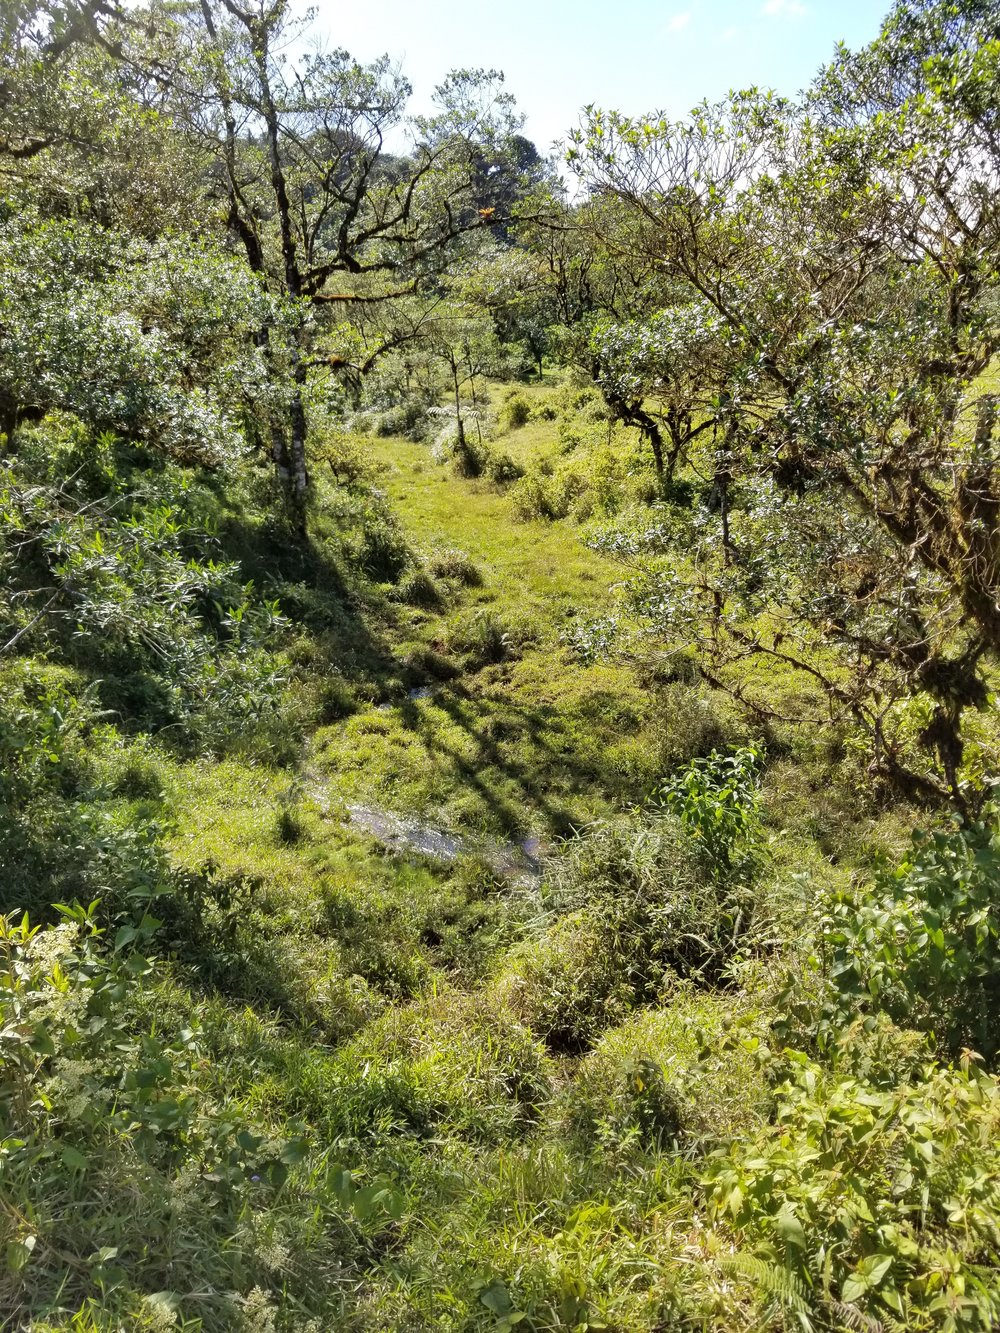 Riparian zone near San Ramon, Costa Rica